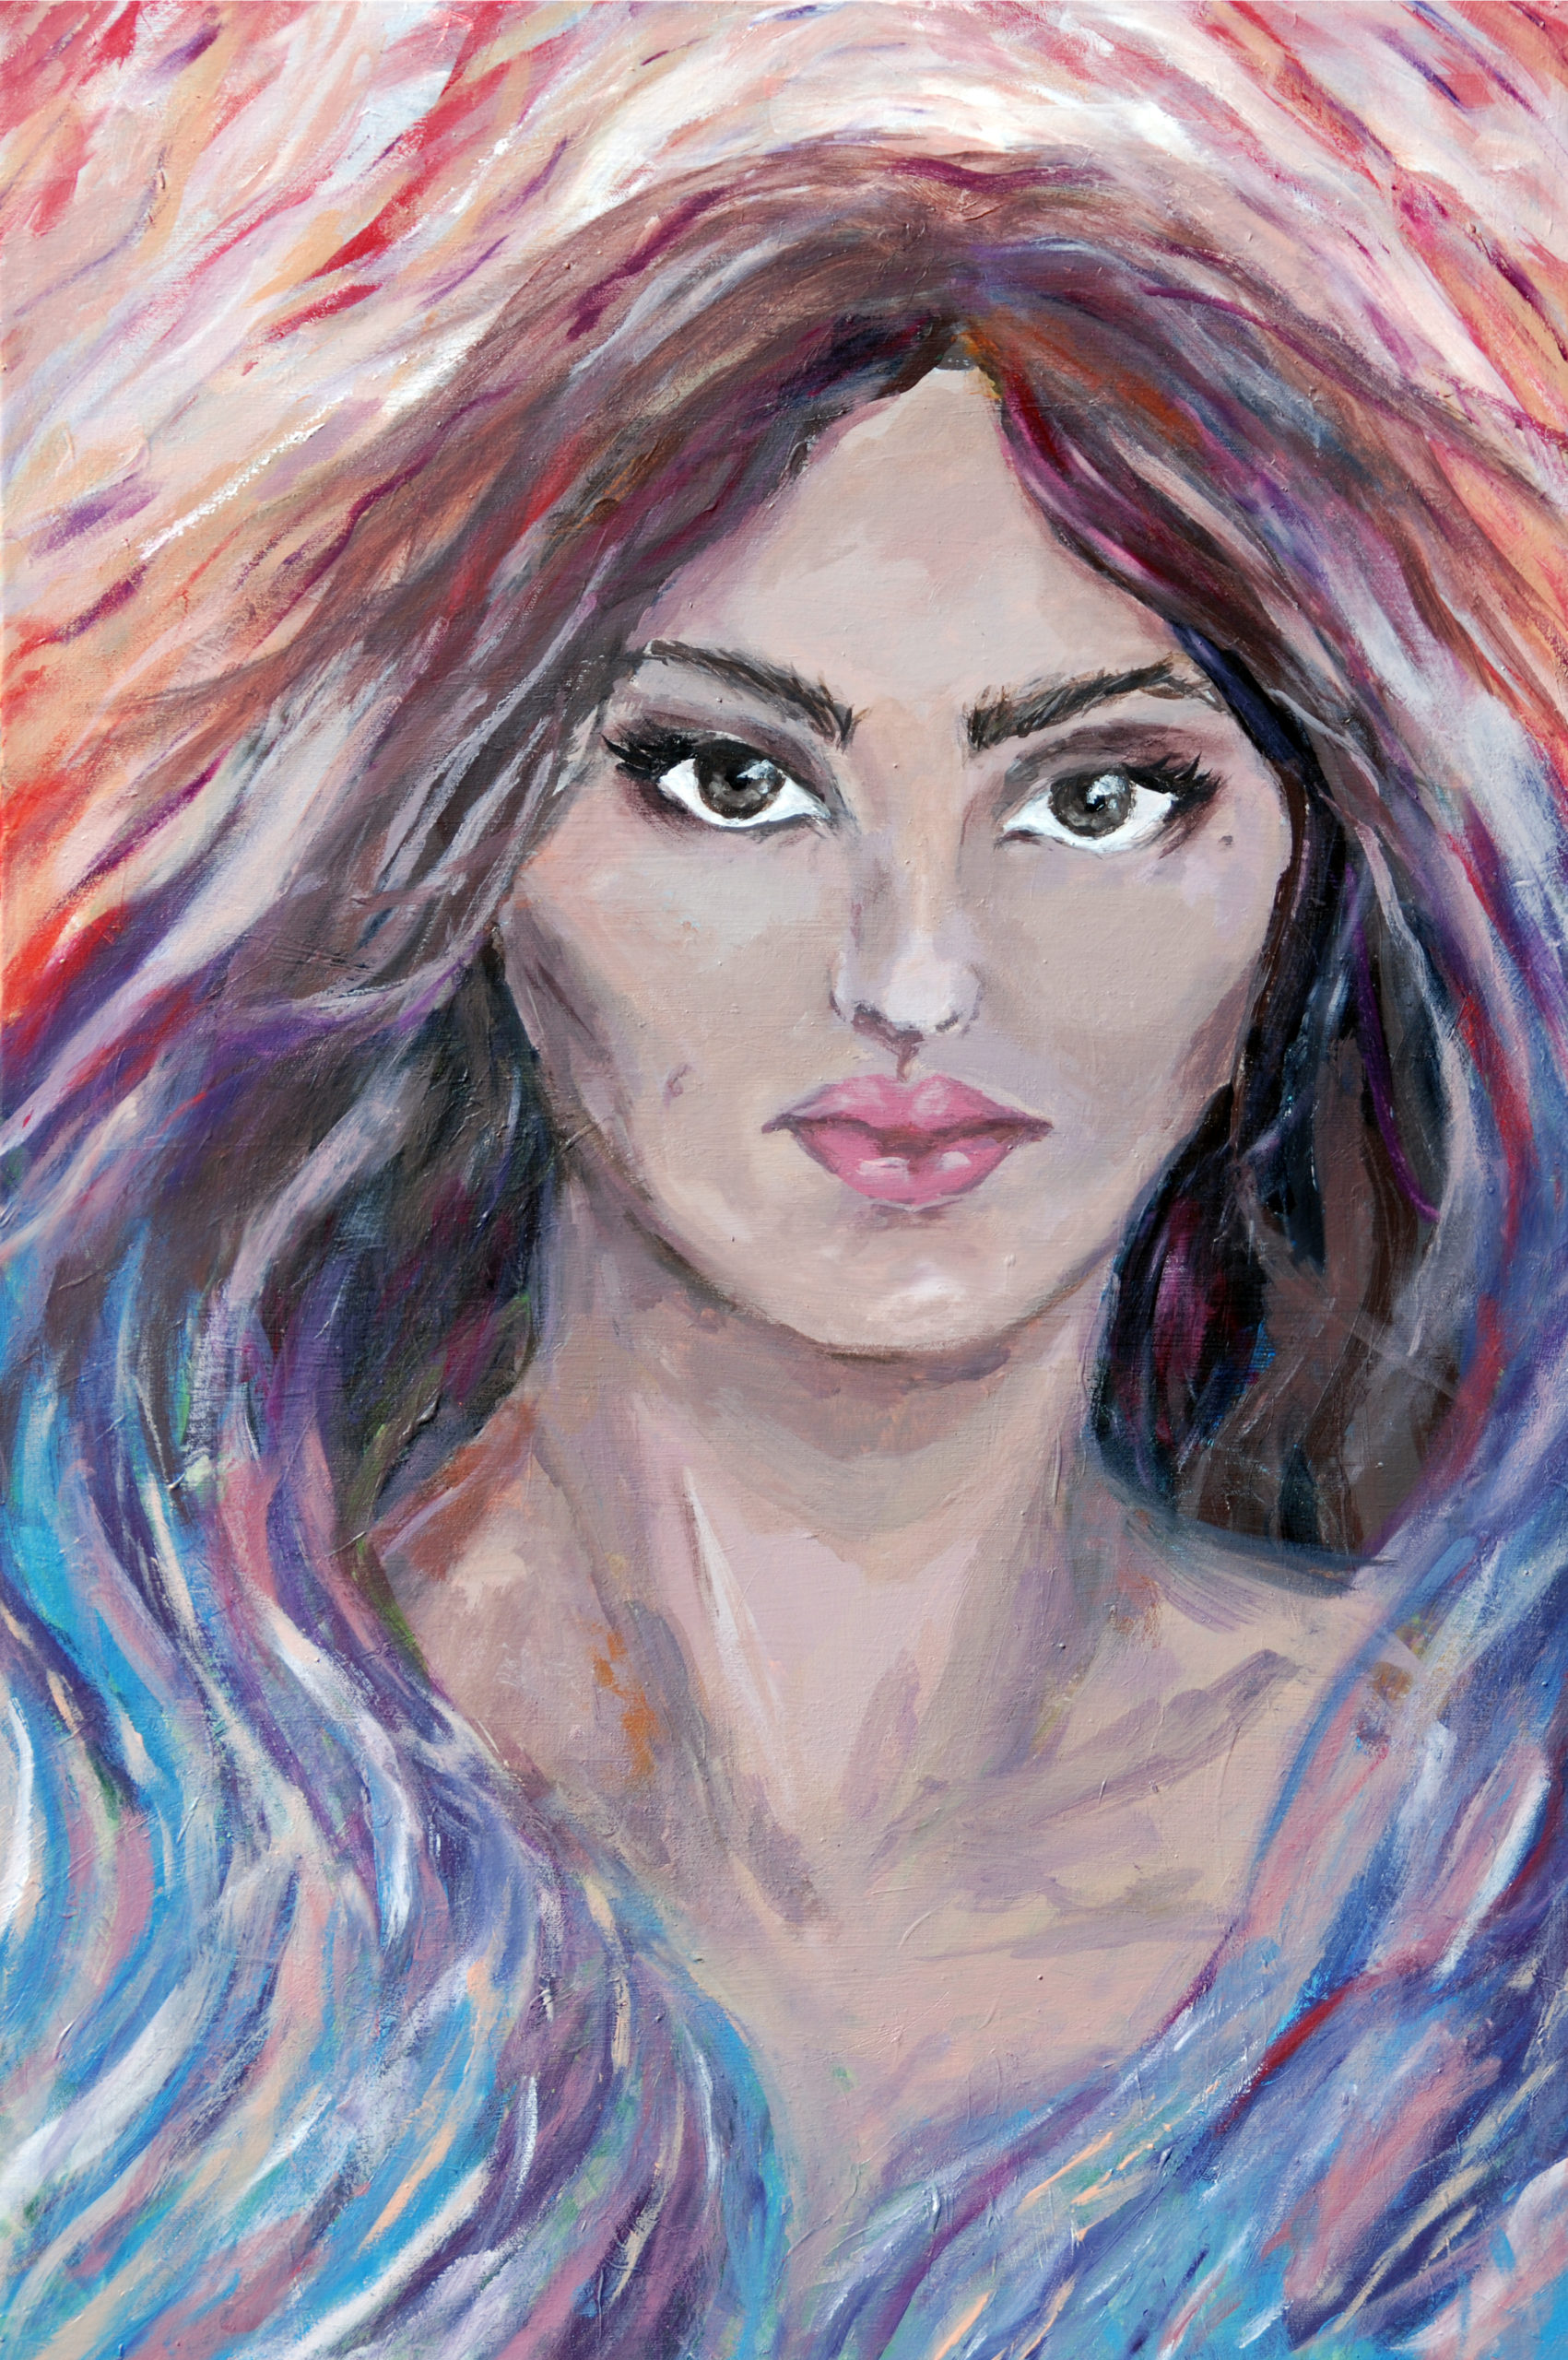 portrait of a woman's face, surrounded by wave-like colors of reds on top and blues/purples on bottom